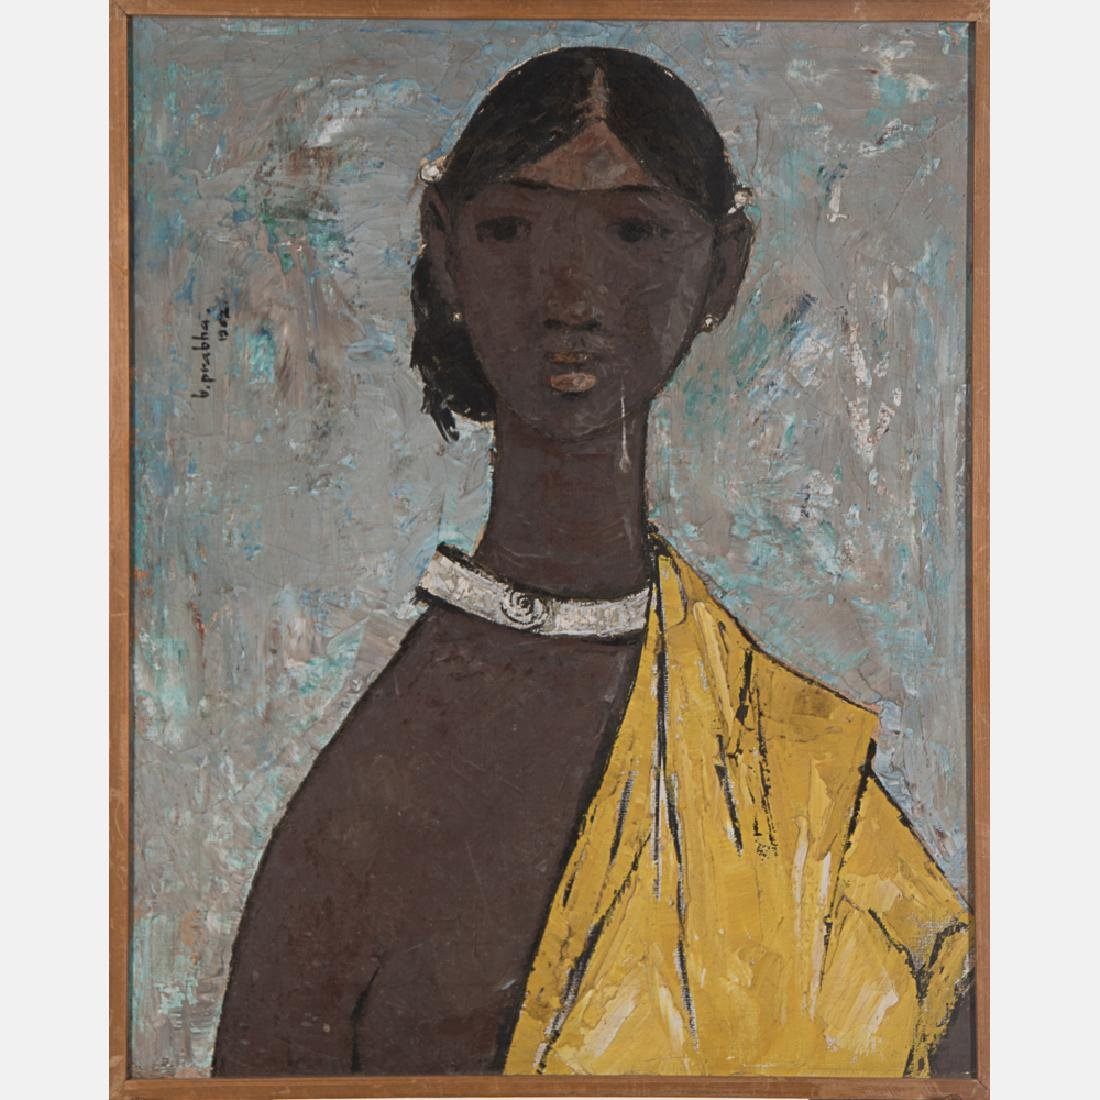 B. Prabha (1933-2001) Portrait of a Female, Oil on